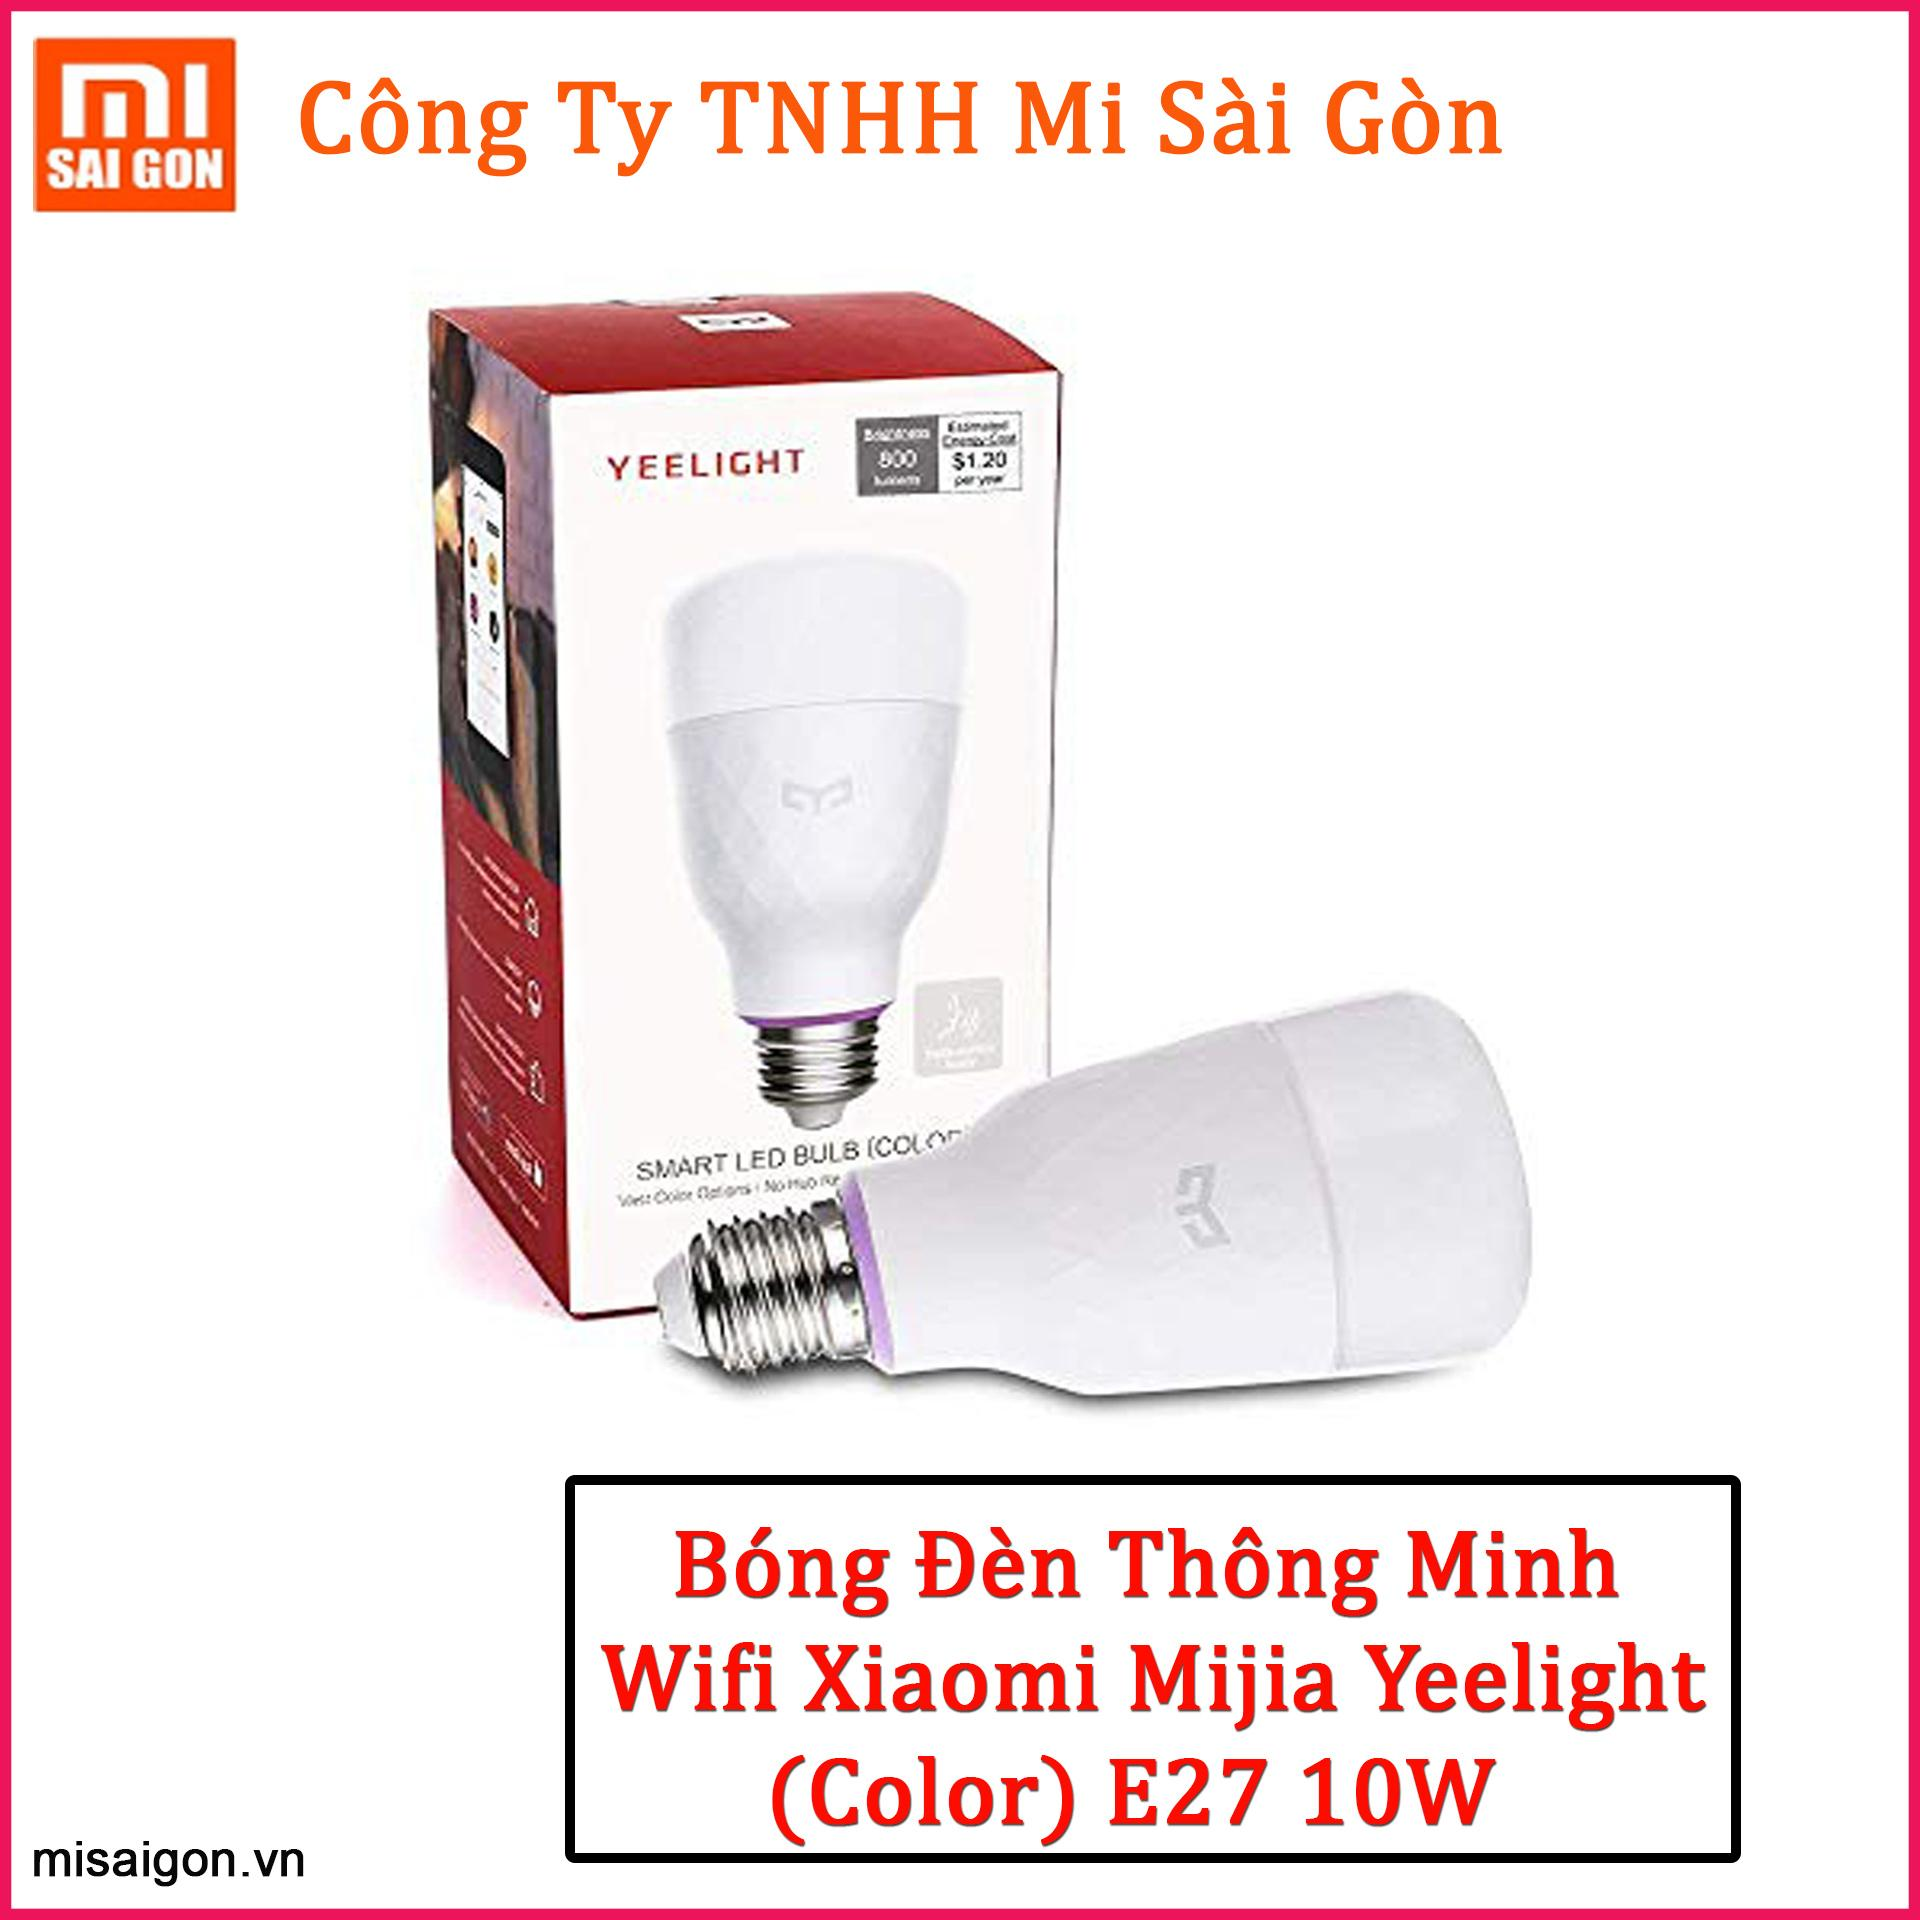 Bóng Đèn Wifi Xiaomi Mijia Yeelight (Color) E27 10W ( 2018 ) - Xiaomi Yeelight Smart LED Build (Color)